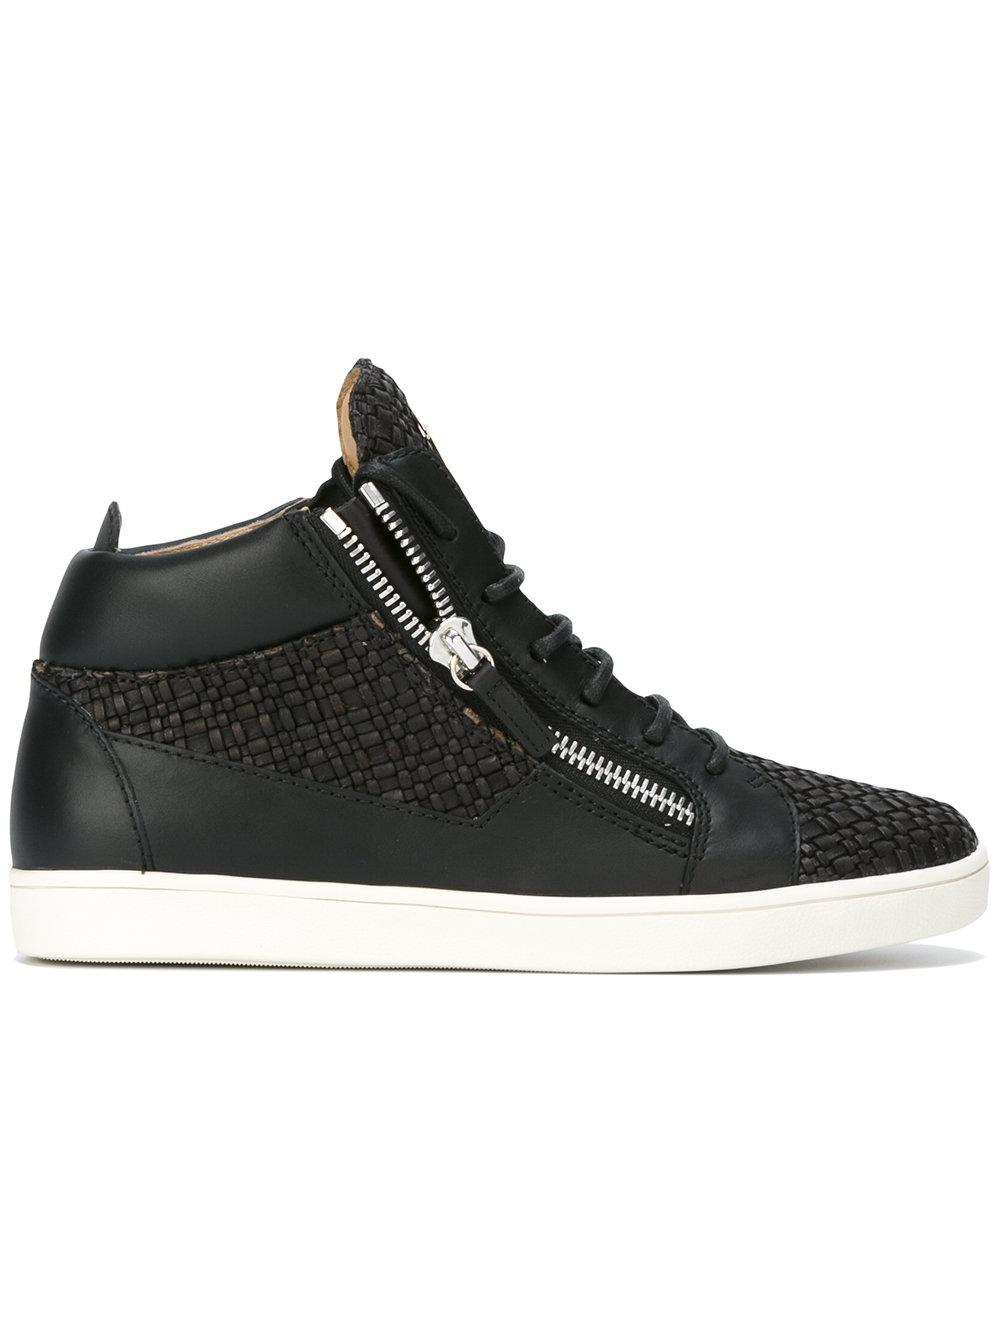 giuseppe zanotti clay mid top sneakers in black for lyst